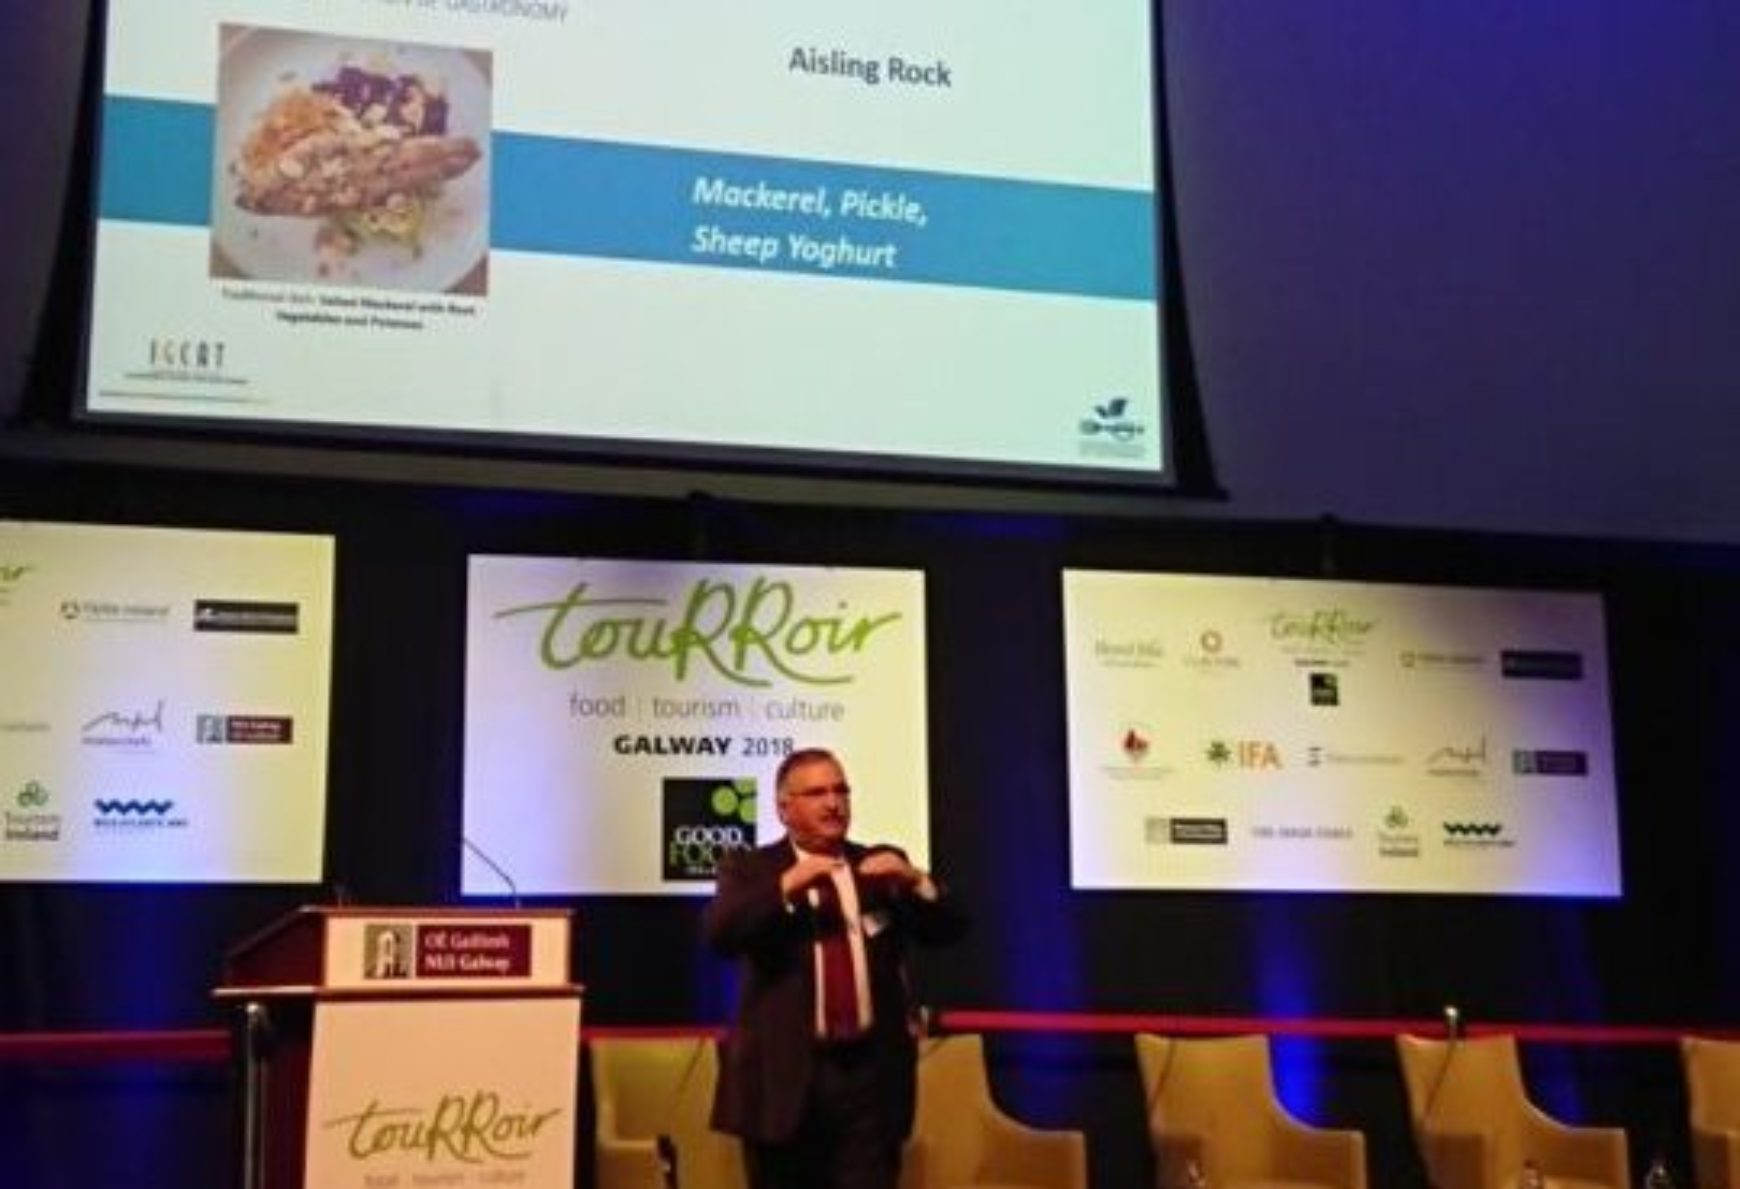 IGCAT and Impacts of European Region of Gastronomy Showcased at TouRRoir 18